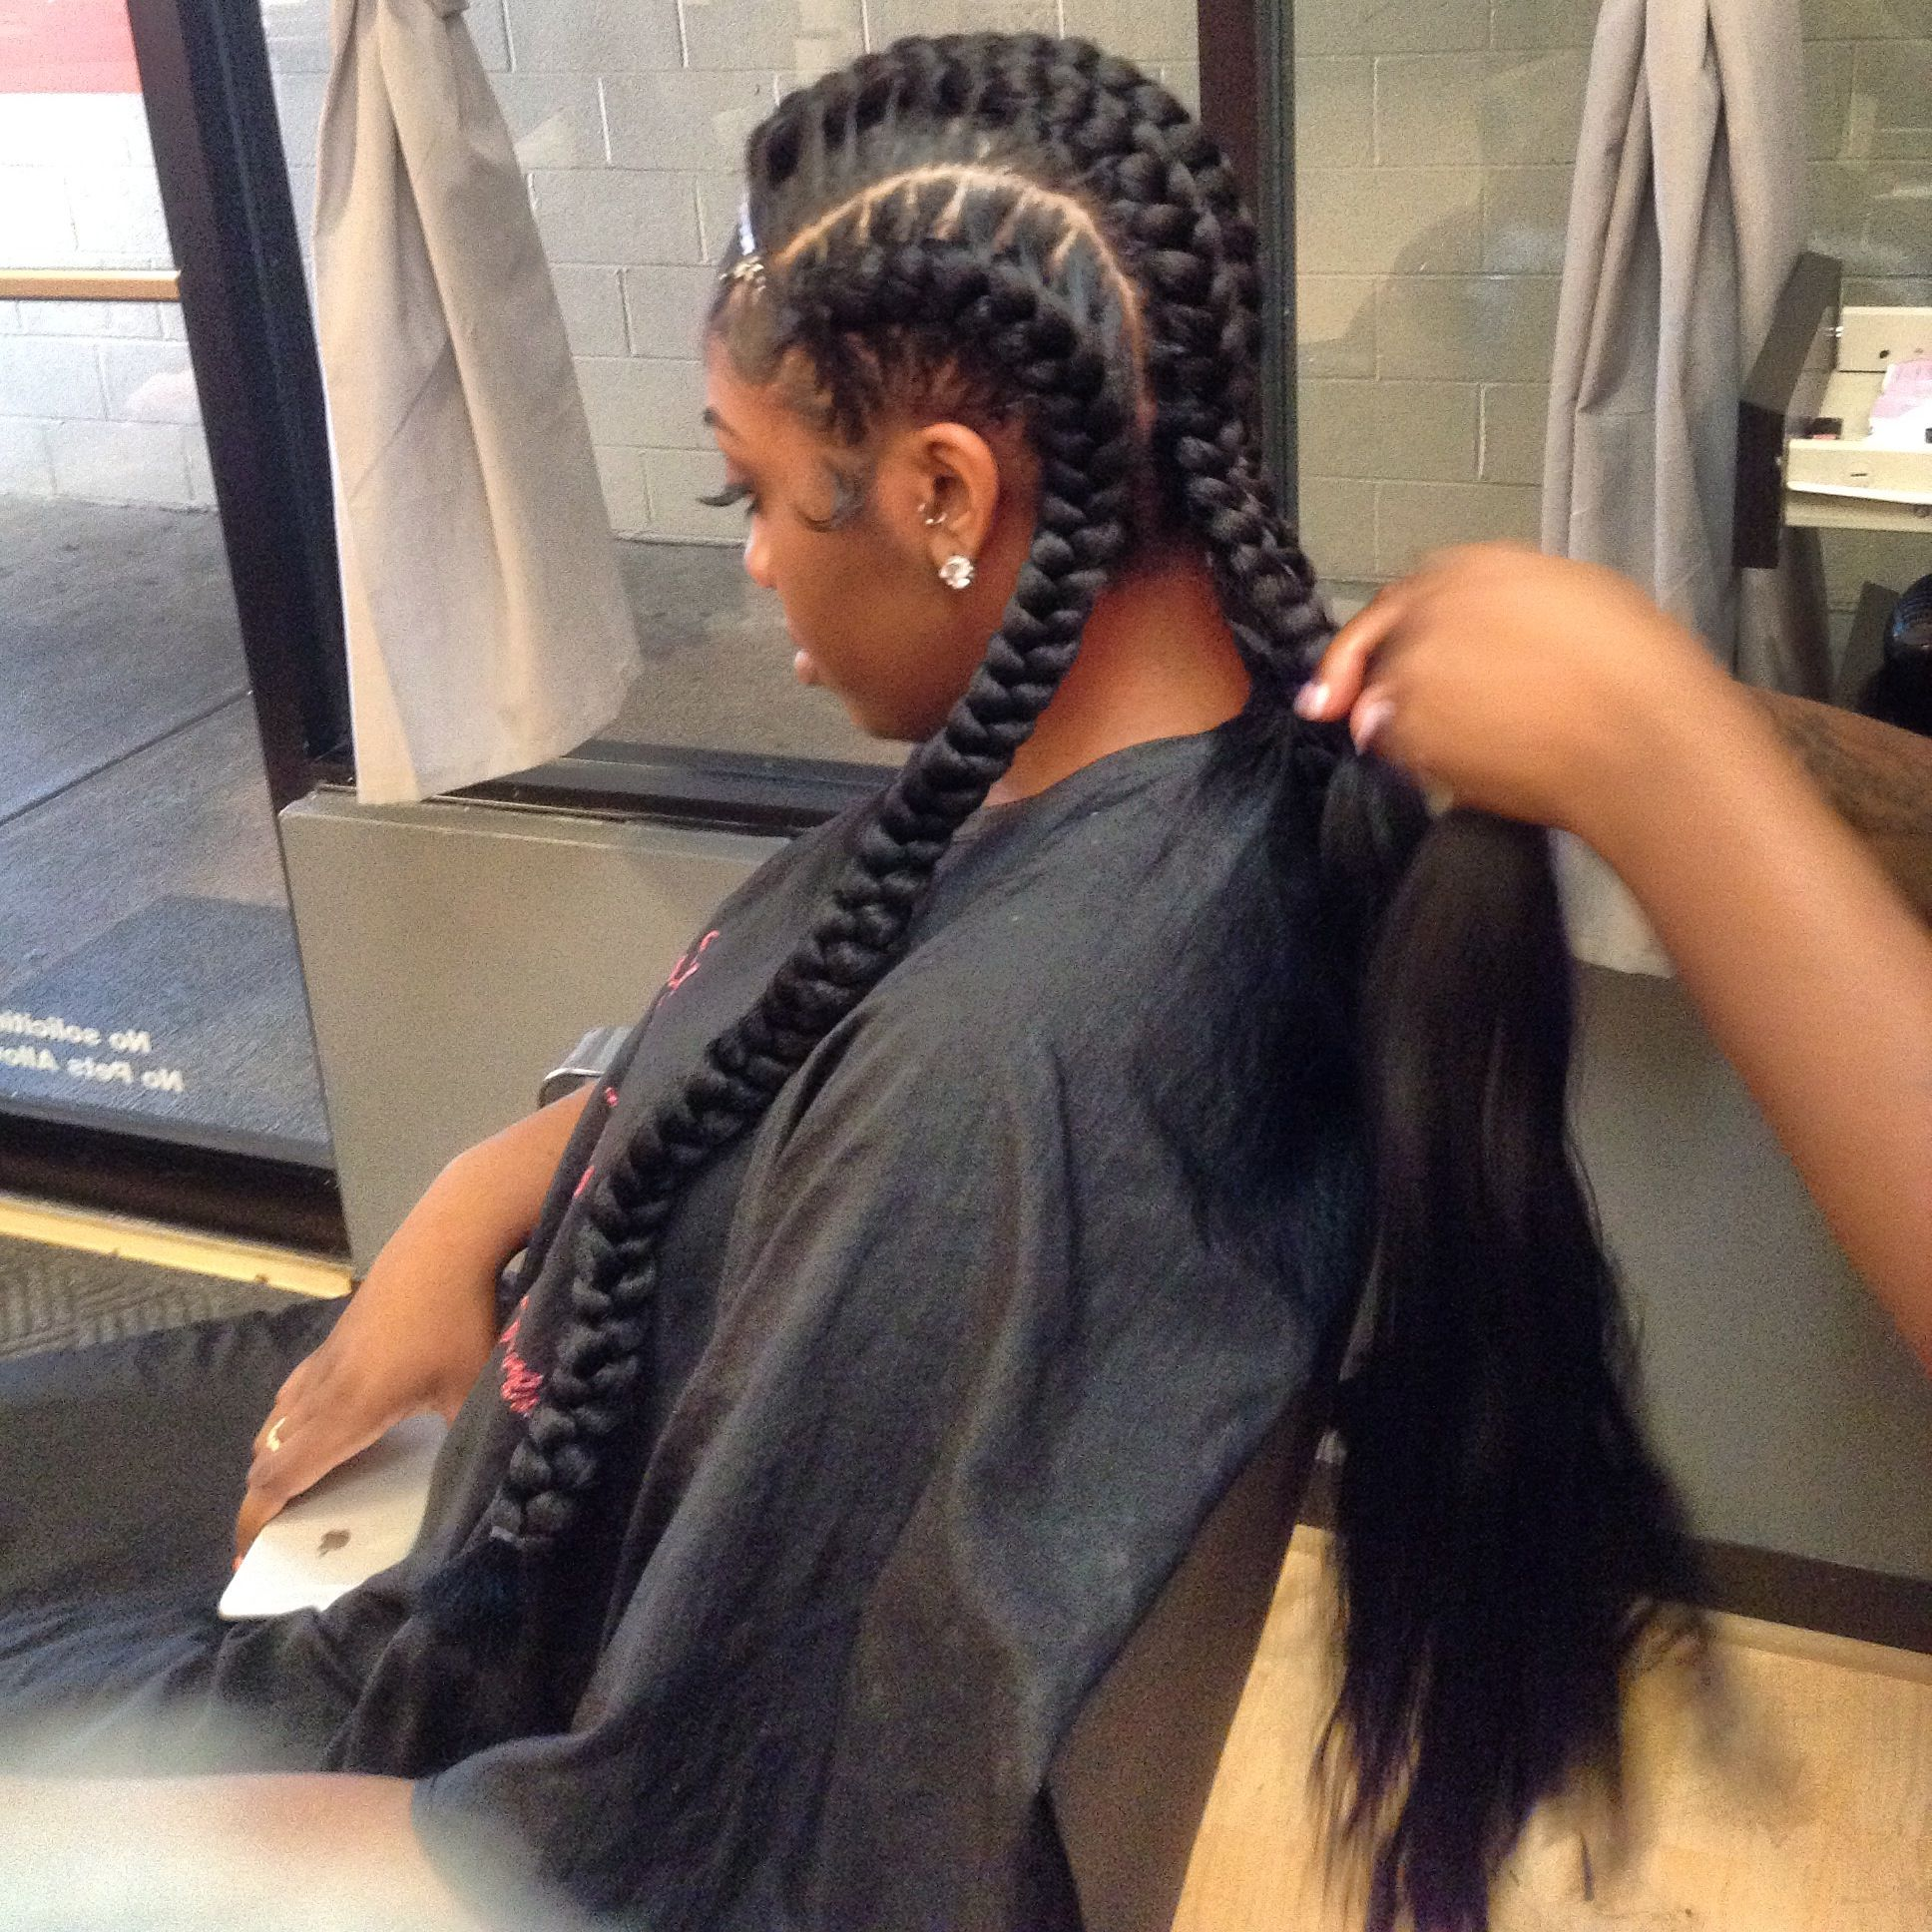 You See The Final Results #polish #neat 30 · French Braidgoddess